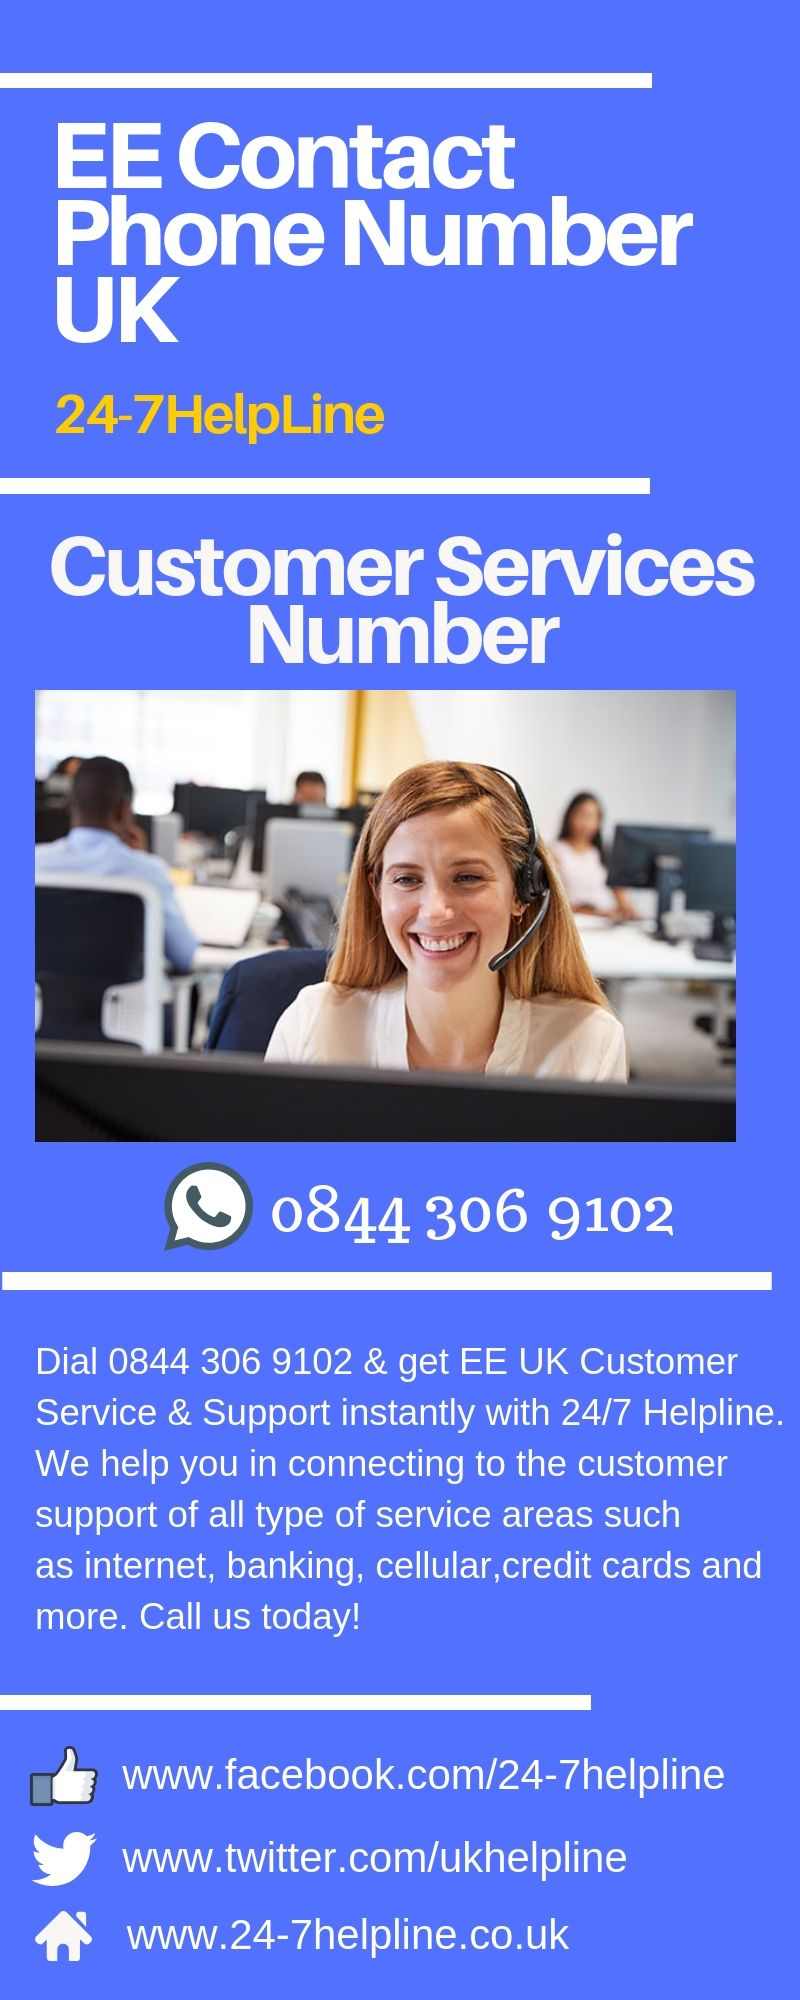 Get Ee Uk Customer Service Support Instantly With 24 7helpline